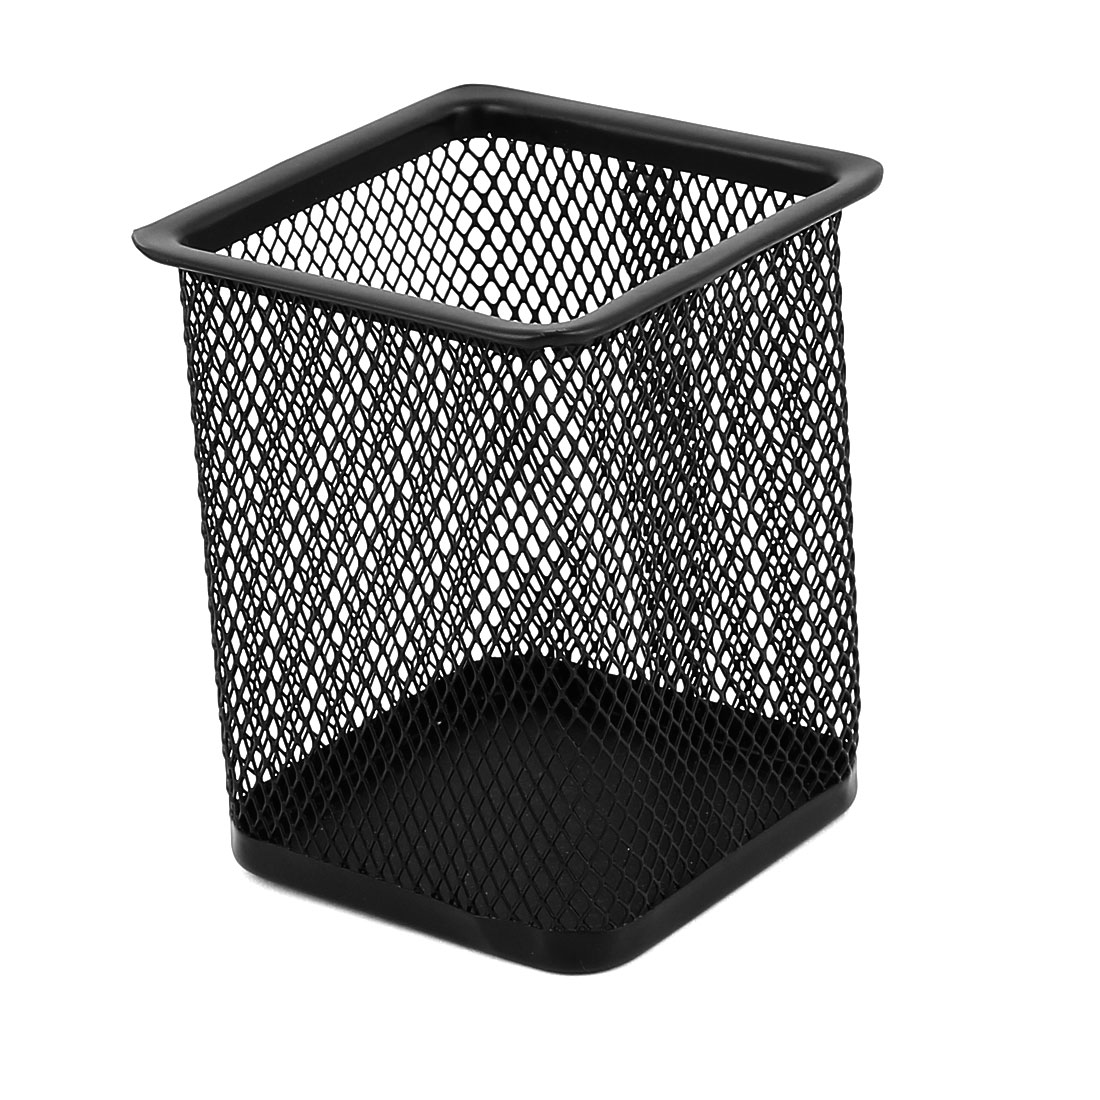 Office School Metal Rectangle Mesh Style Pen Pencil Holder Container Organizer Black